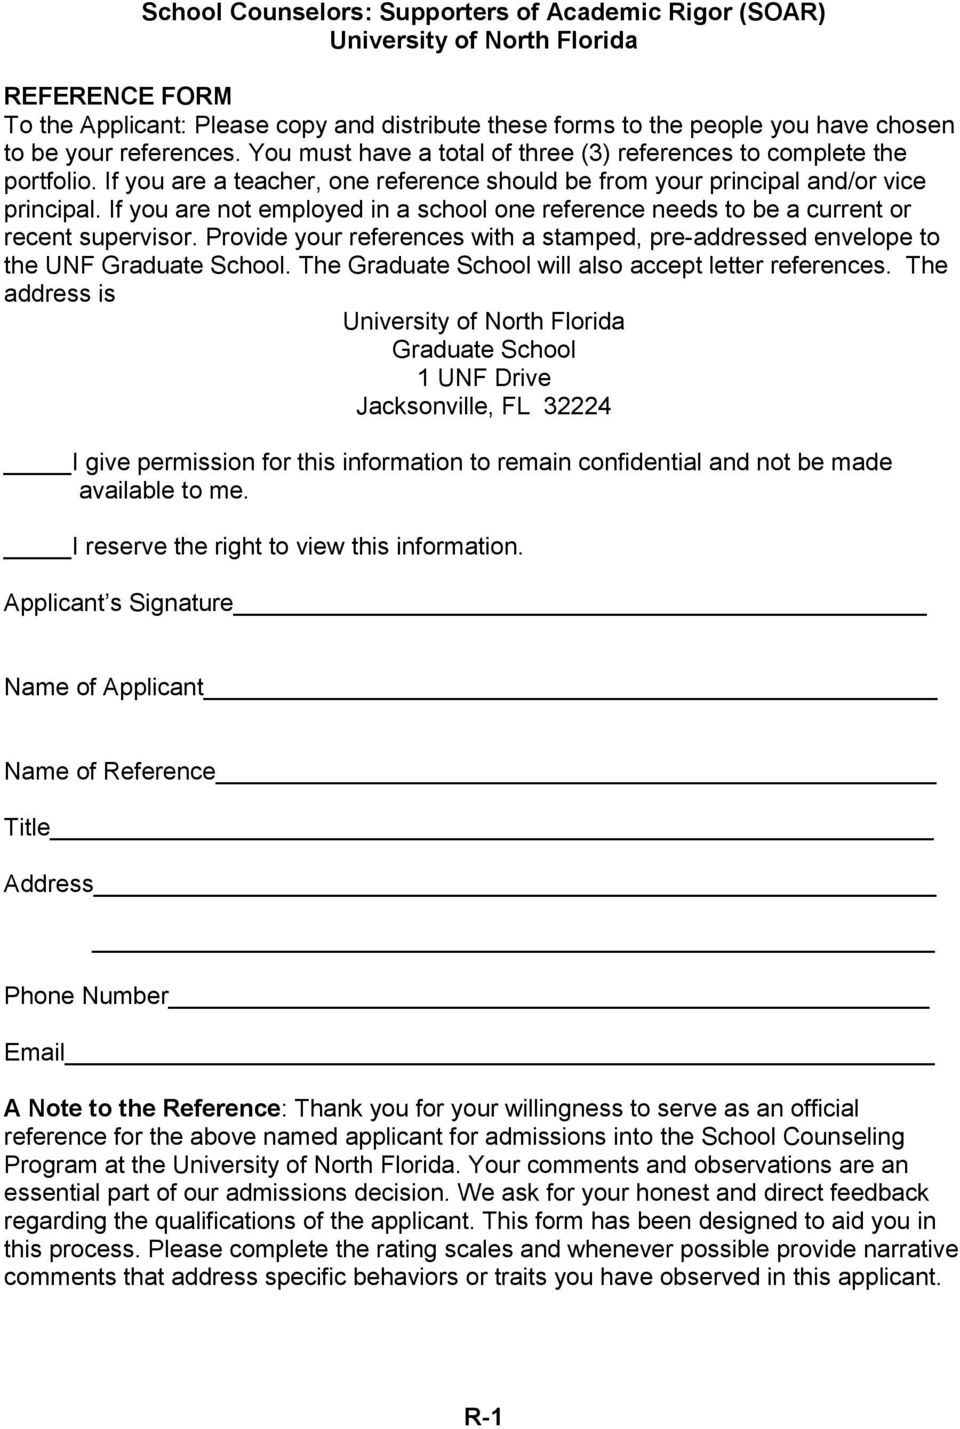 If you are not employed in a school one reference needs to be a current or recent supervisor. Provide your references with a stamped, pre-addressed envelope to the UNF Graduate School.